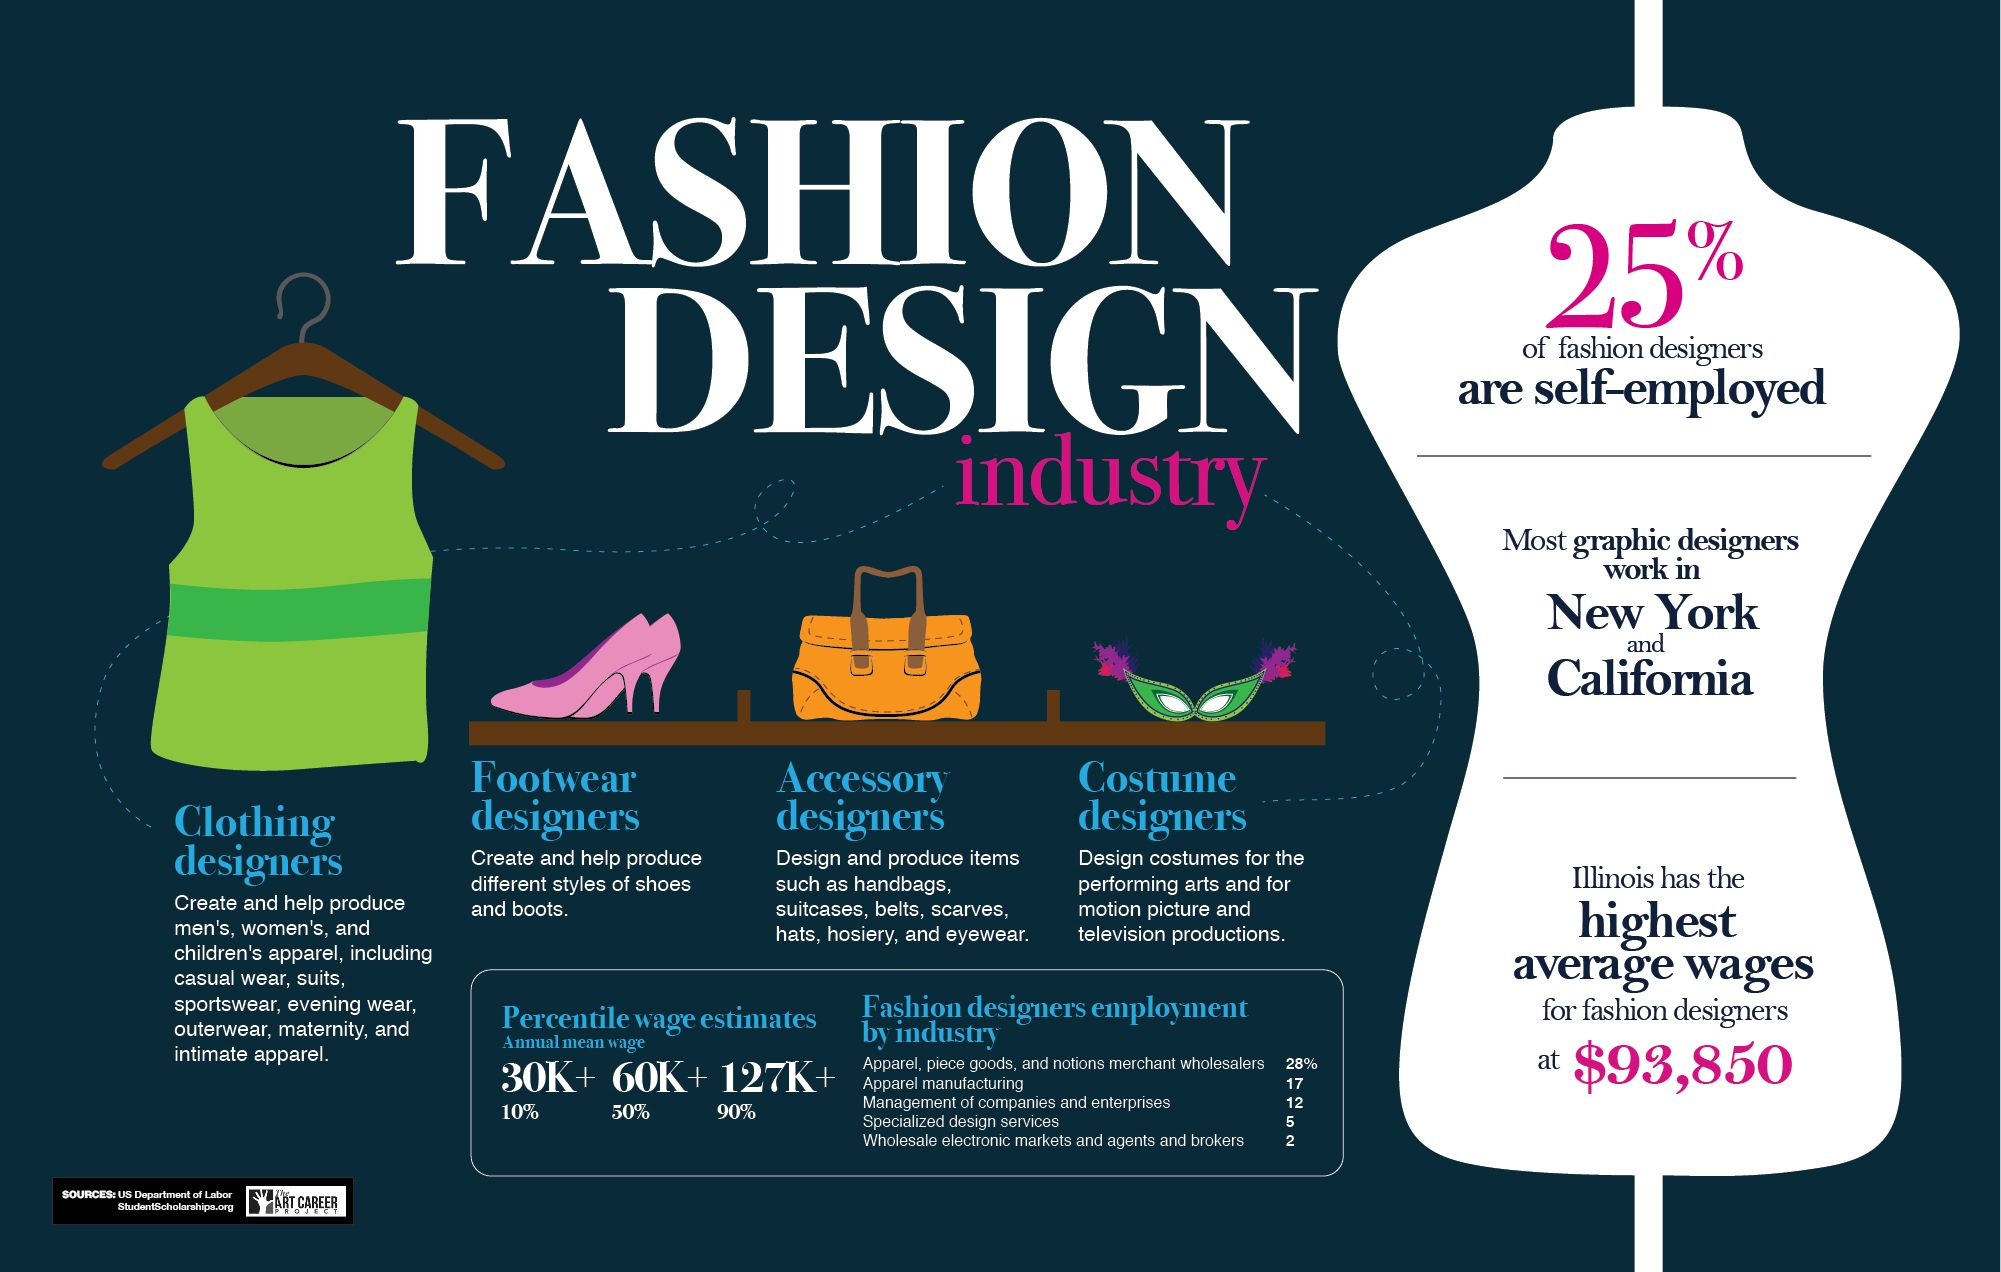 How To Become A Fashion Designer The Art Career Project Become A Fashion Designer Fashion Design Work In New York